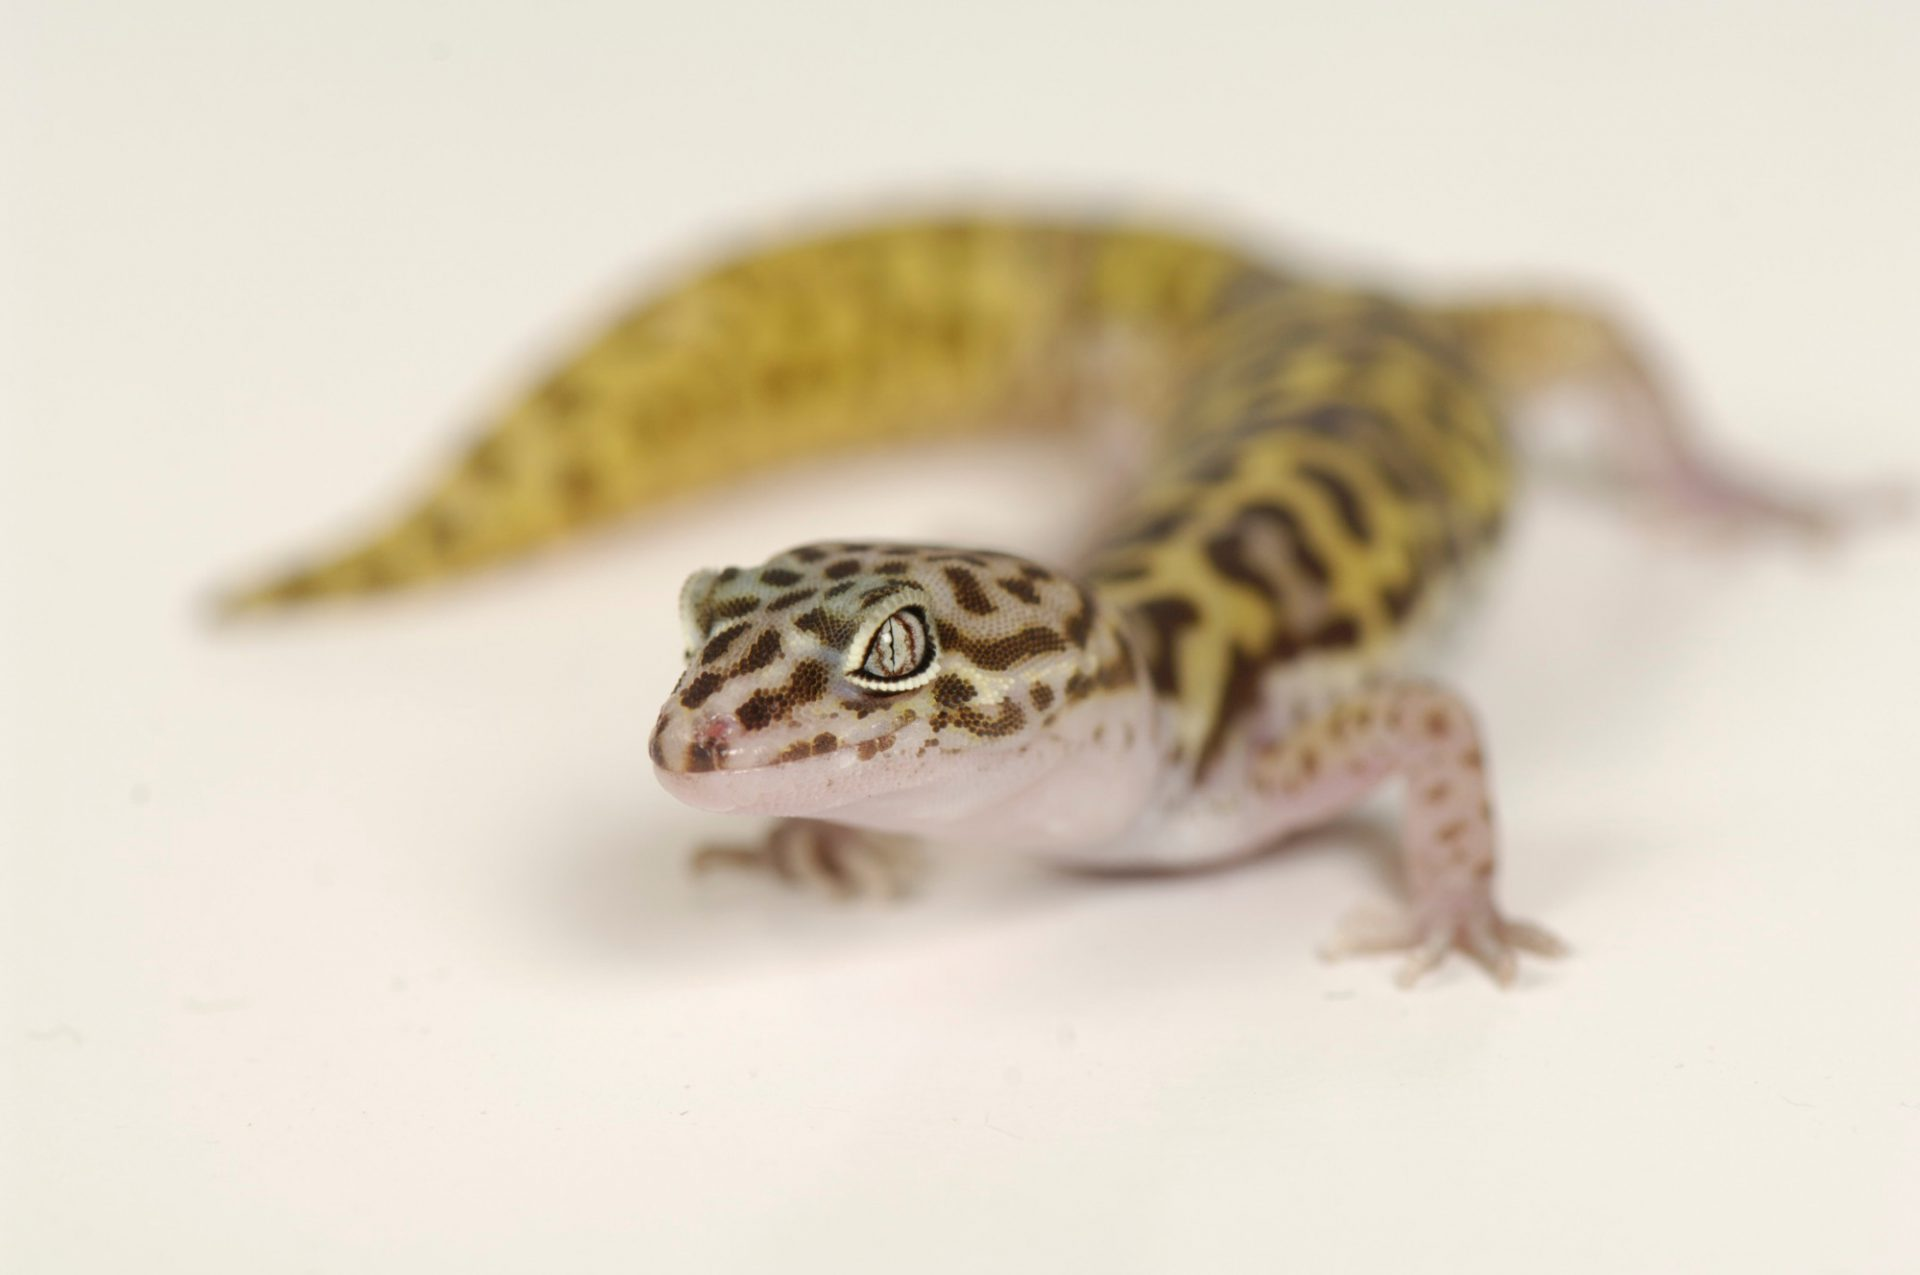 Photo: A Texas banded gecko (Coleonyx brevis) at Reptile Gardens.